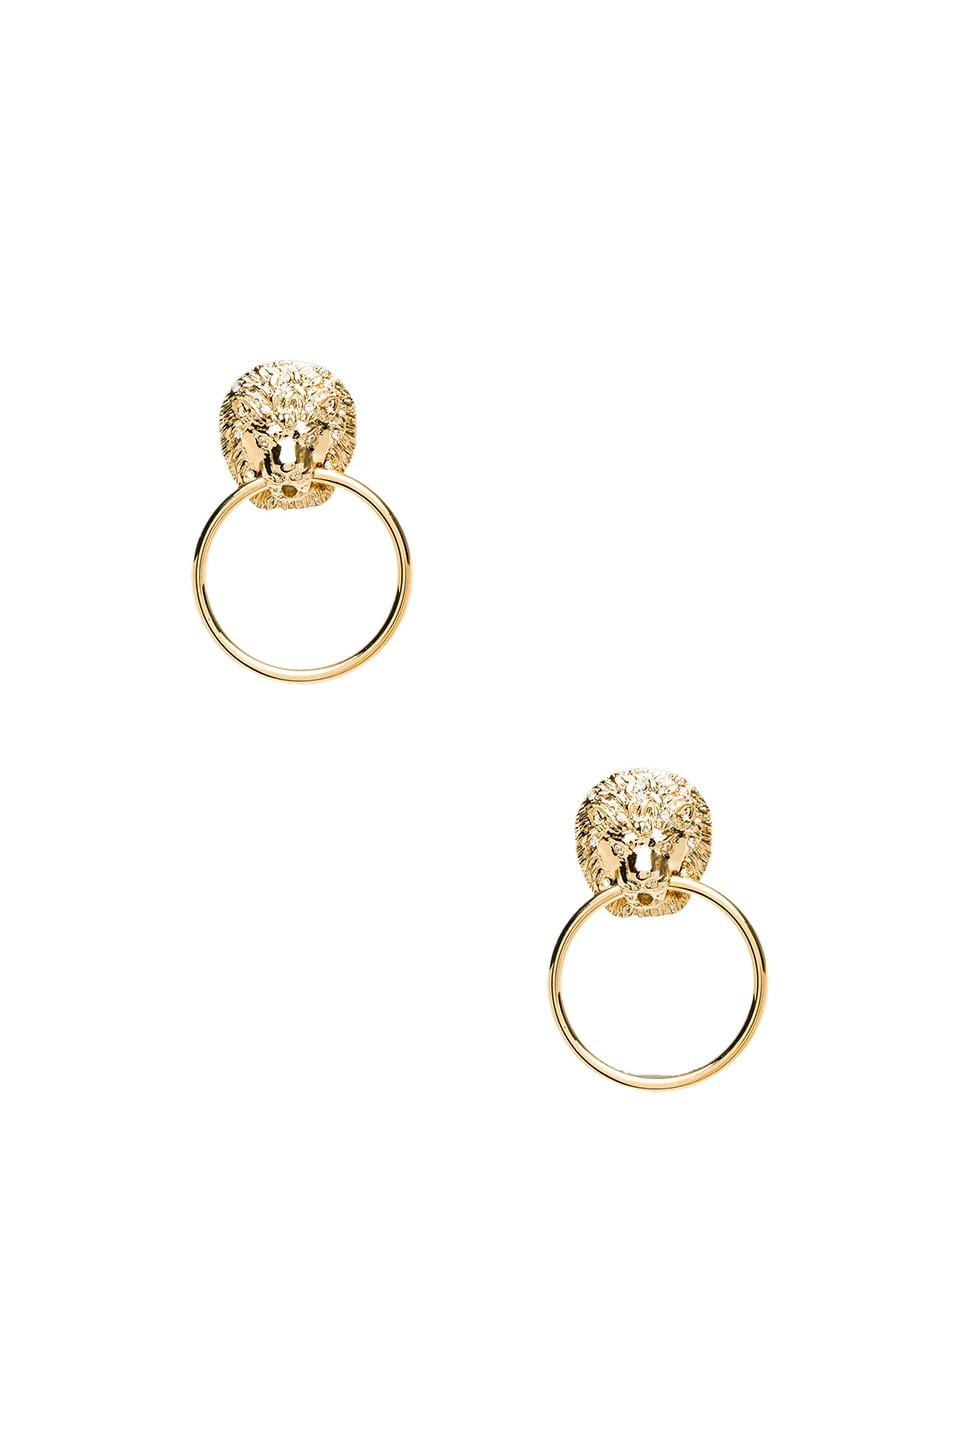 Kenneth Jay Lane Lion Head Doorknocker Earrings in Gold & Crystal